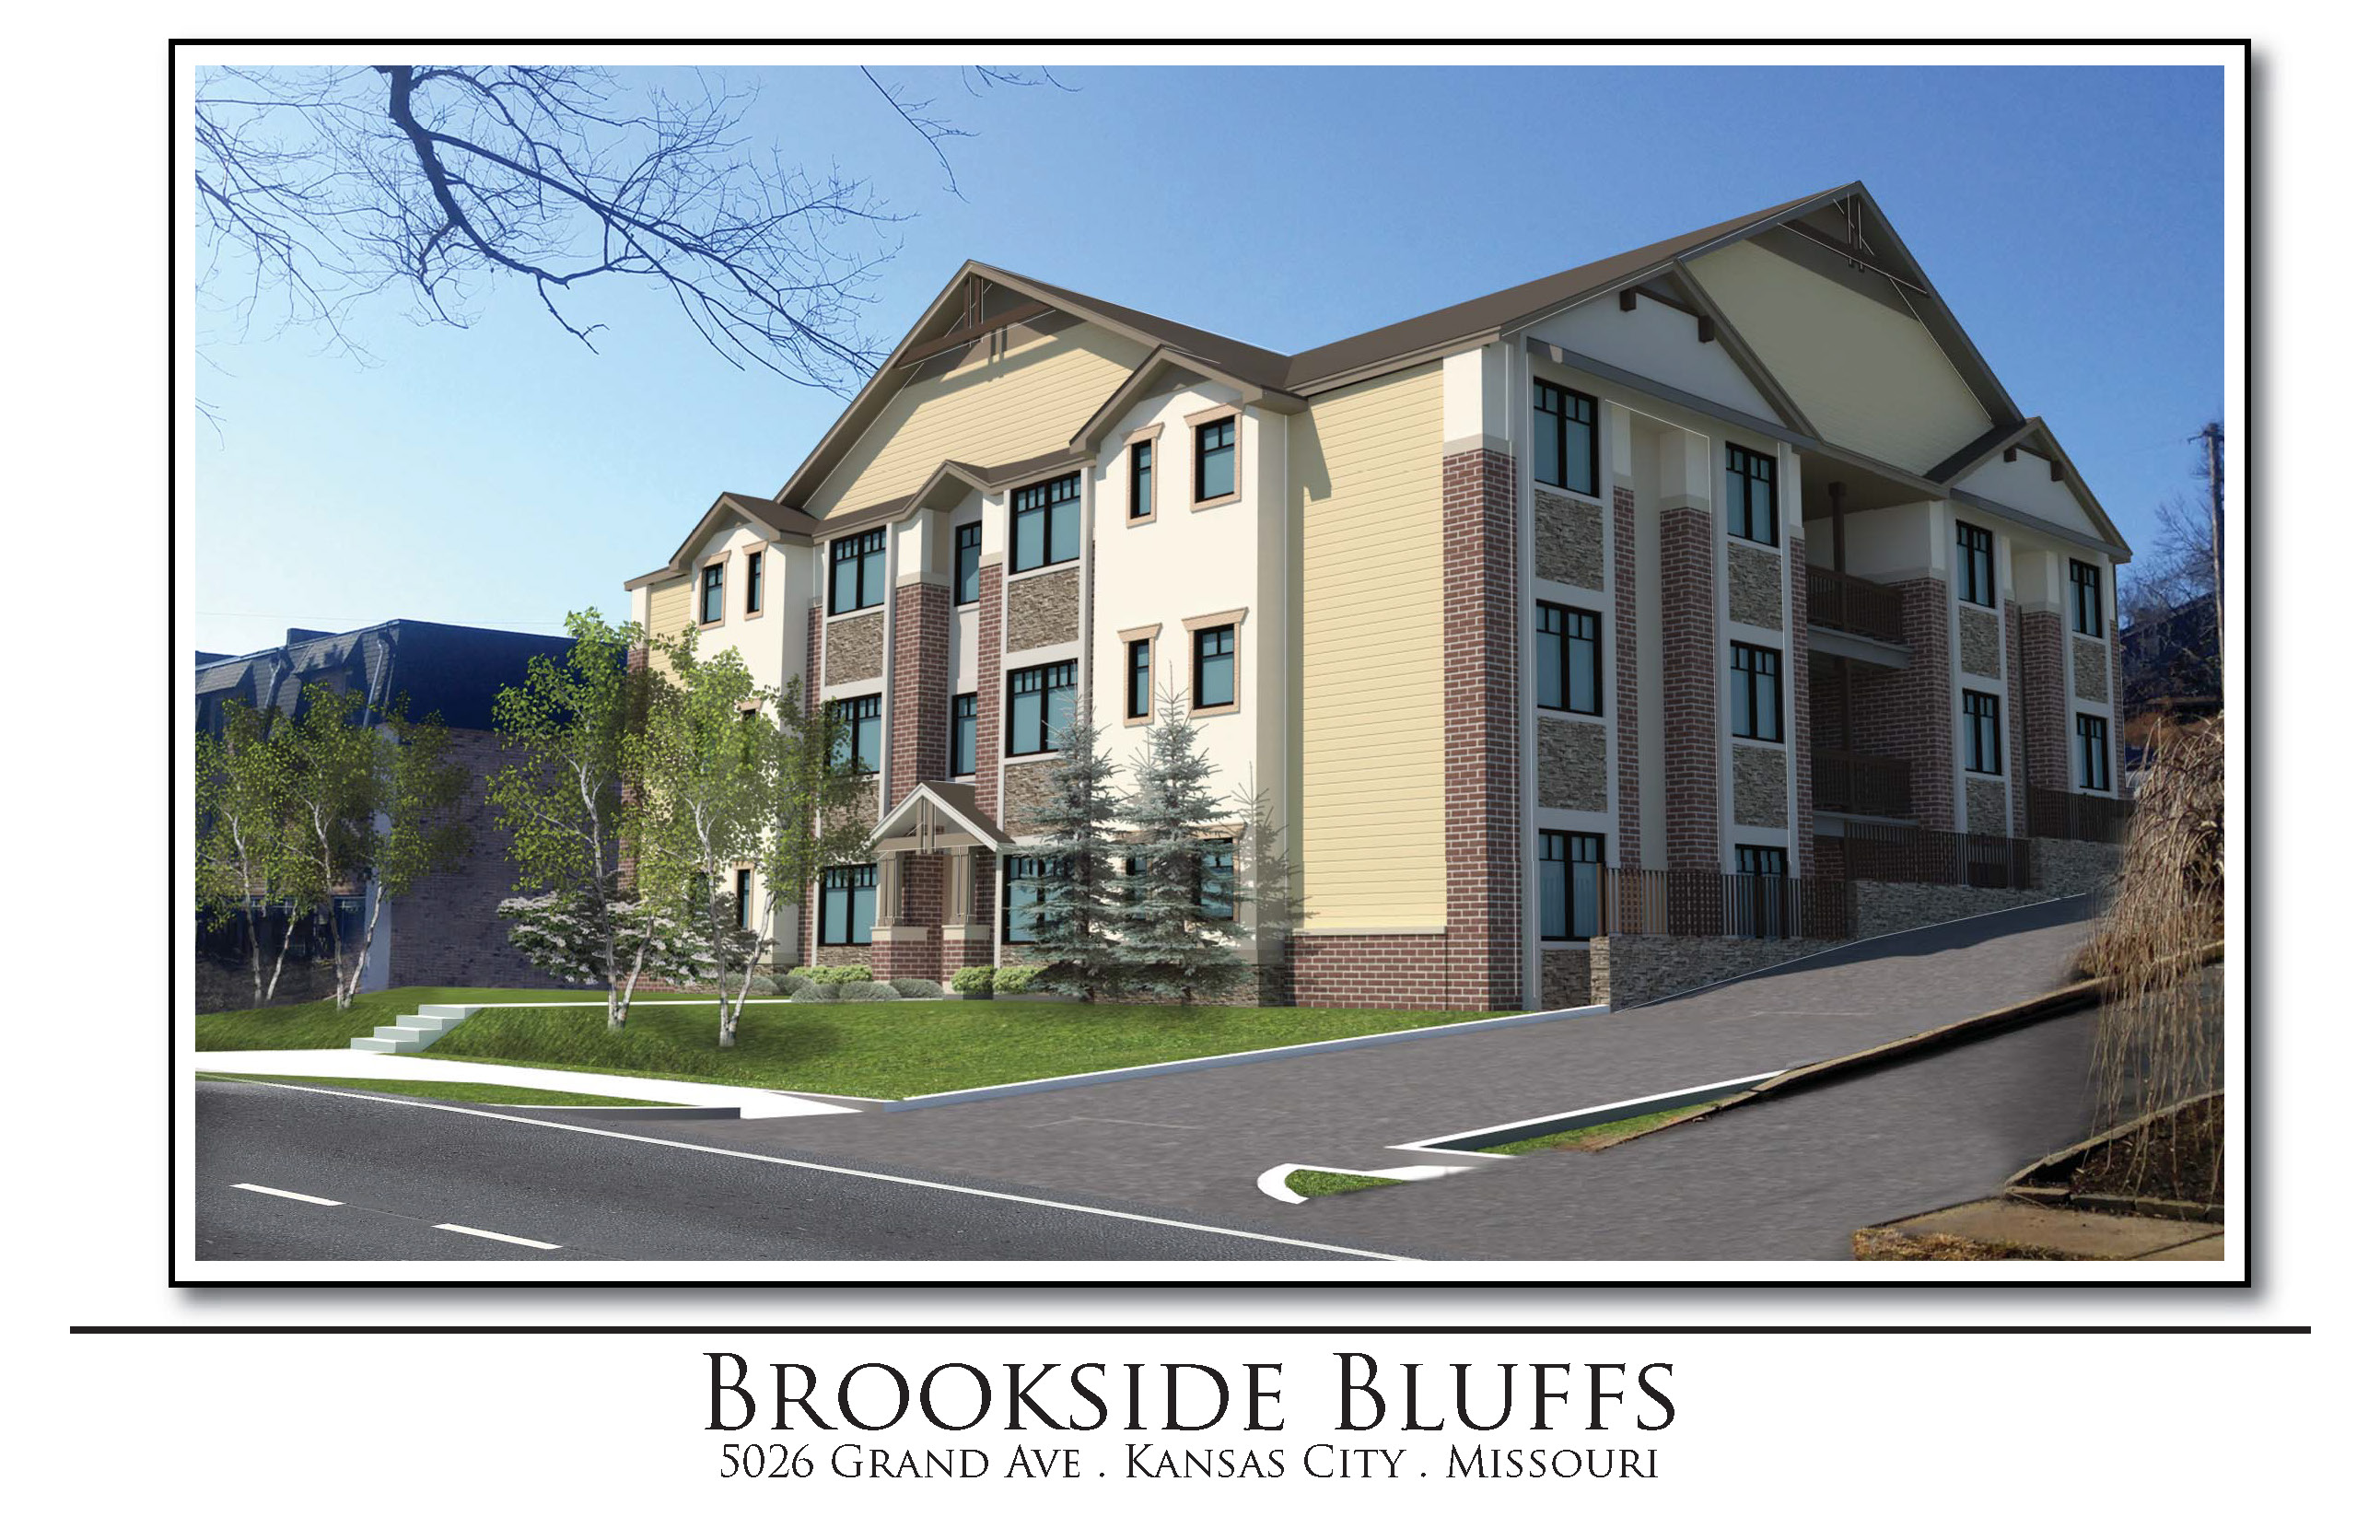 Brookside Bluffs - Coming Soon